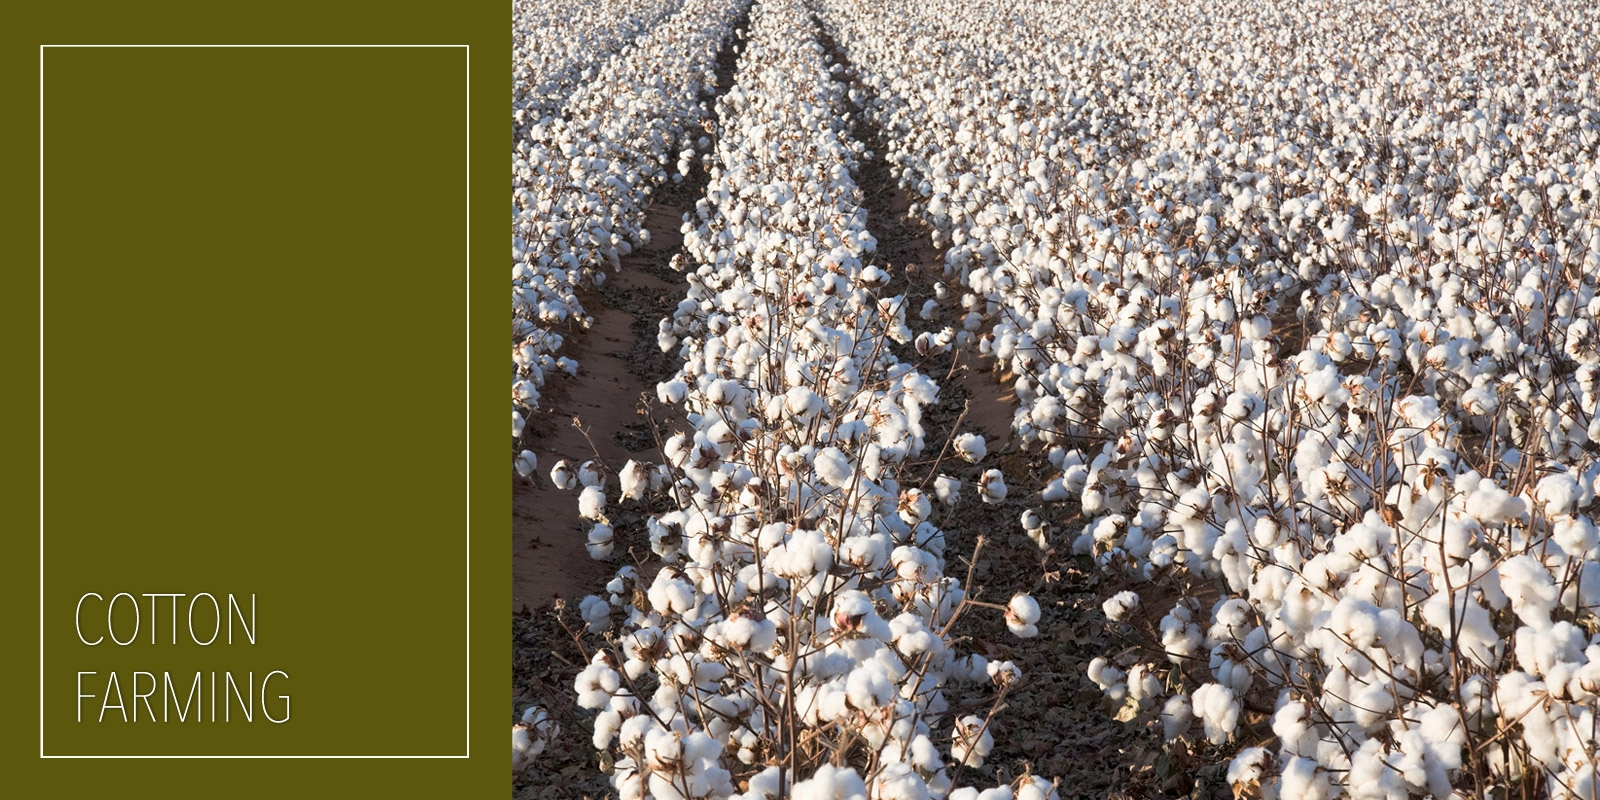 Negative Effects of Cotton Farming